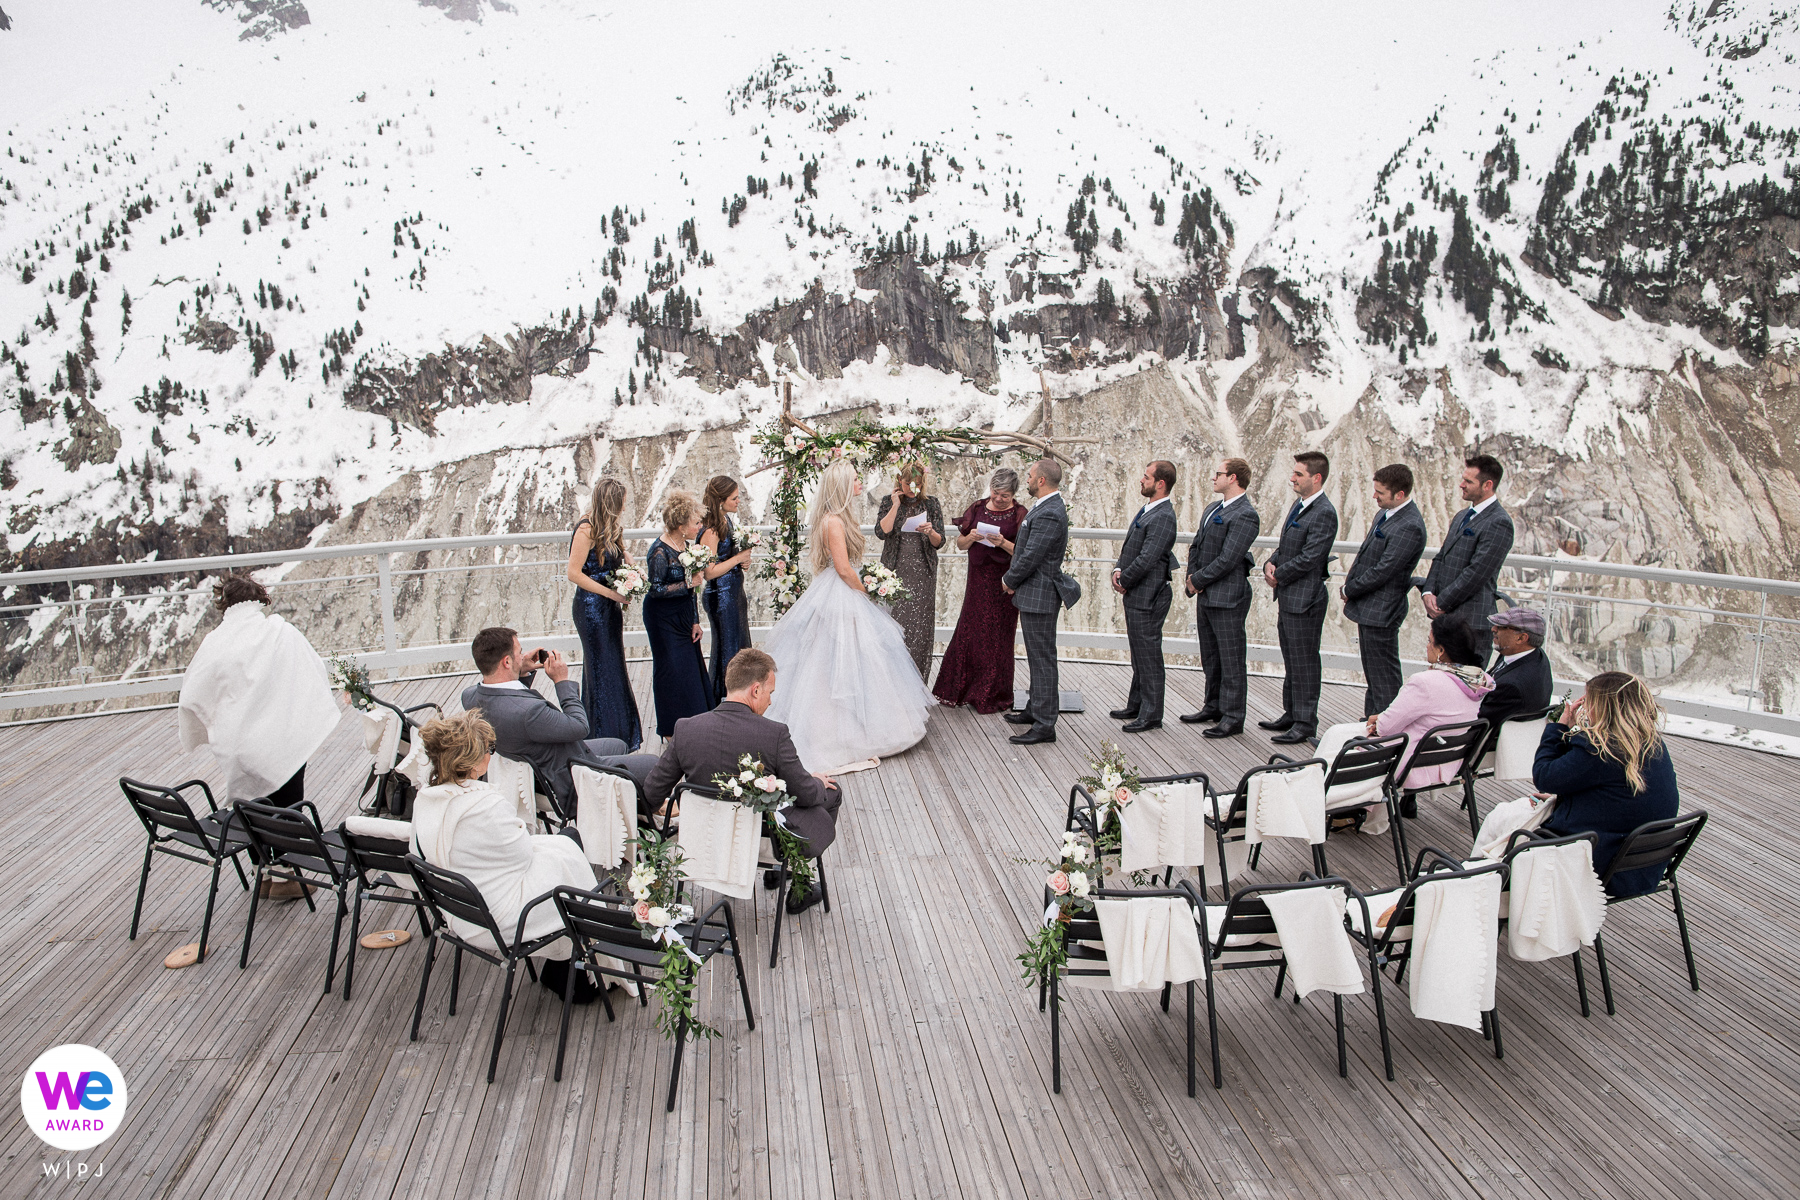 Chamonix, French Alps Elopement | All the guests sat on the outdoor deck during the elopement wedding in Chamonix, surrounded by breathtaking, snow-filled scenery.